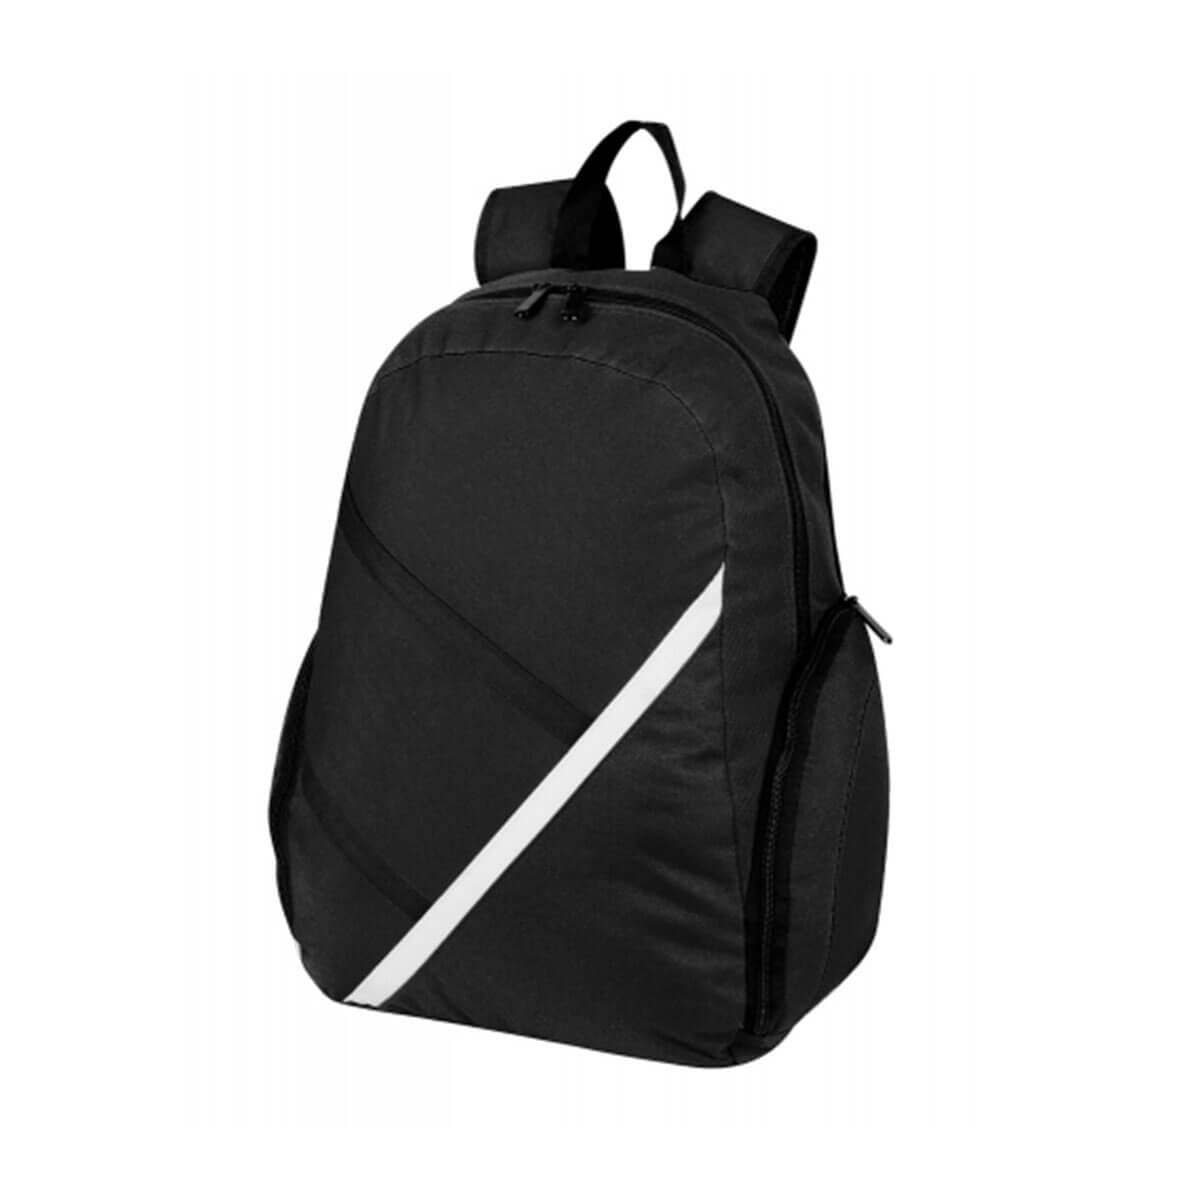 Precinct Backpack-Black / White / Black